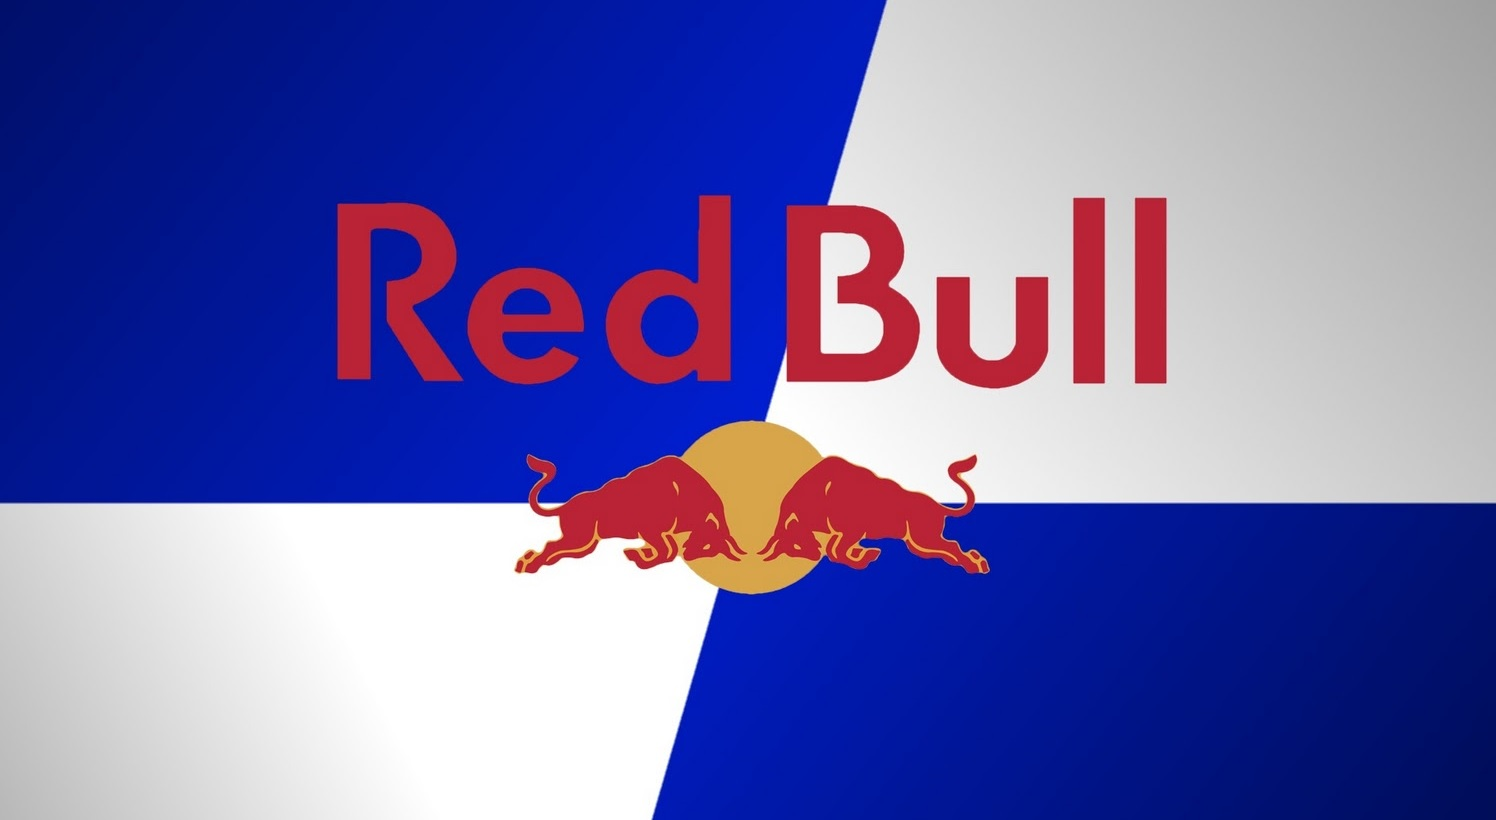 redbull strategy One small jump for red bull, one giant leap for business marketing: red bull stratos may be the most successful marketing campaign of all time more.